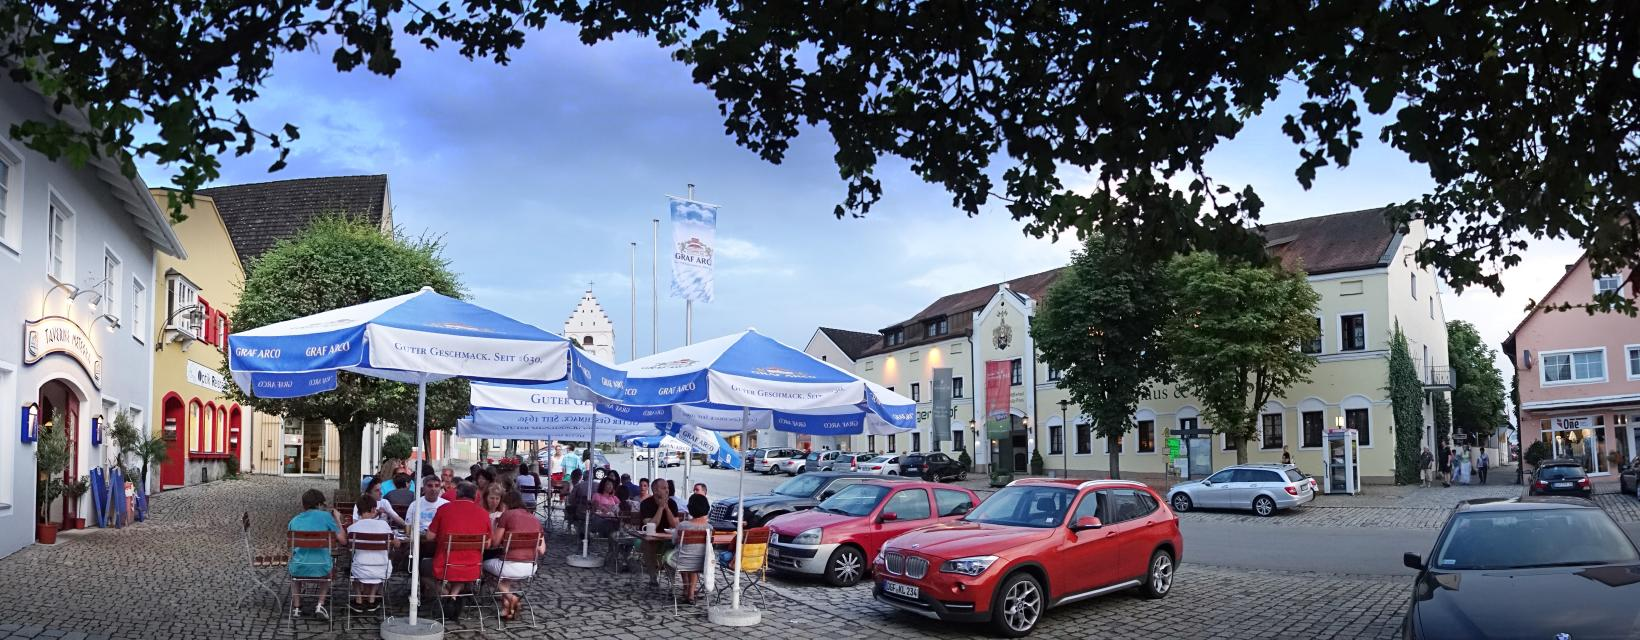 reisbach single event